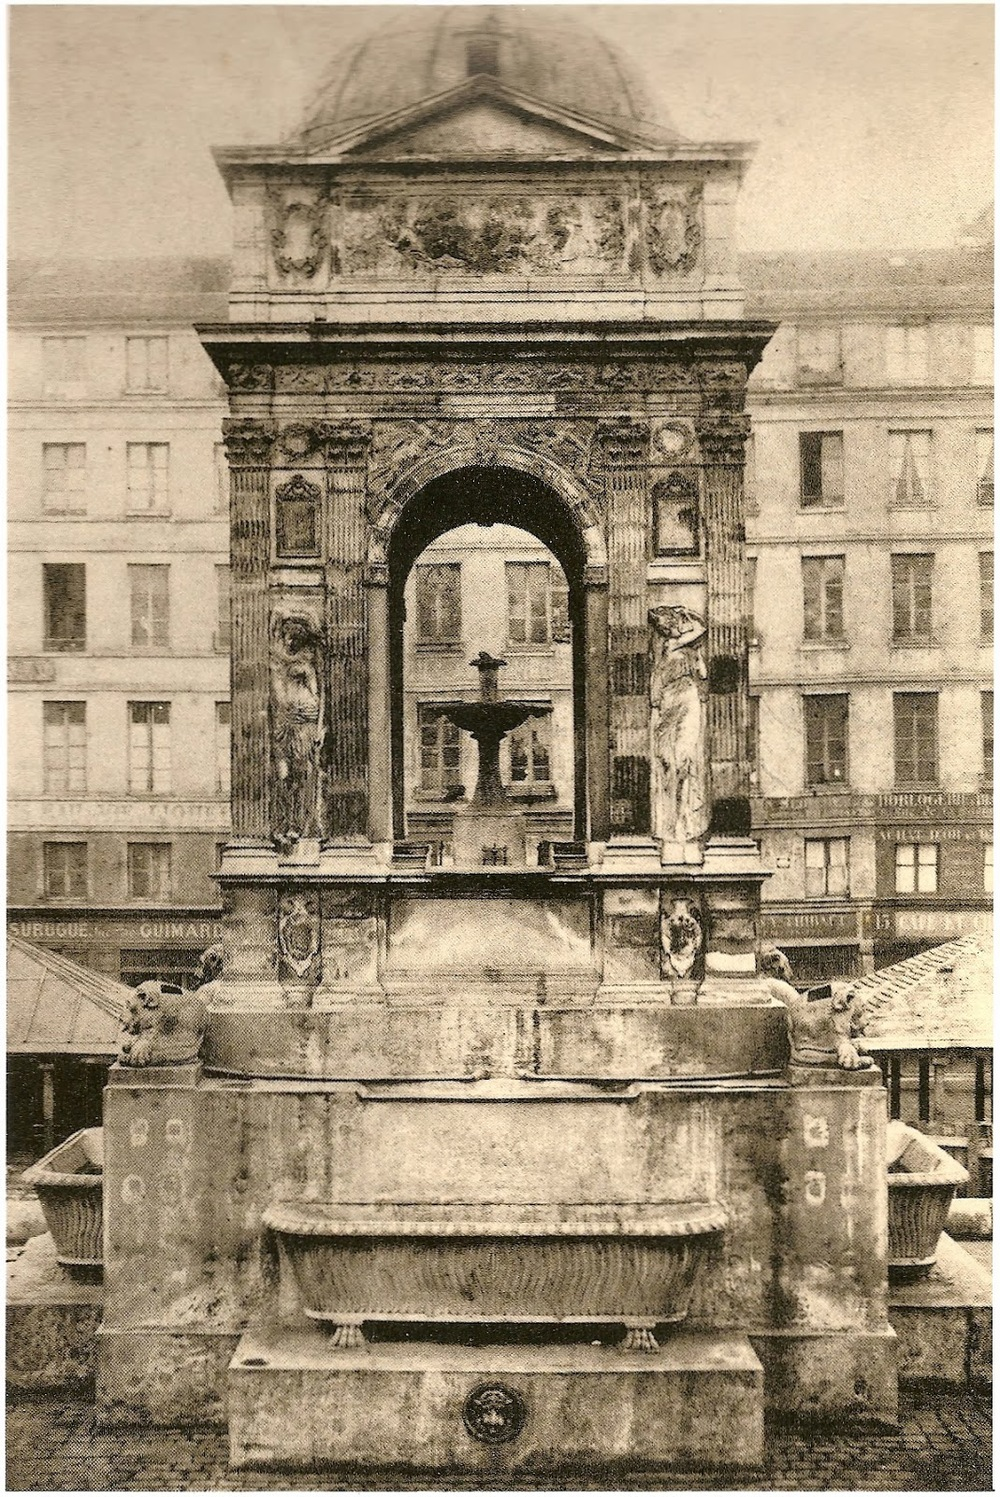 Fontaine_des_Innocents_1860_Charles_Marville.jpg